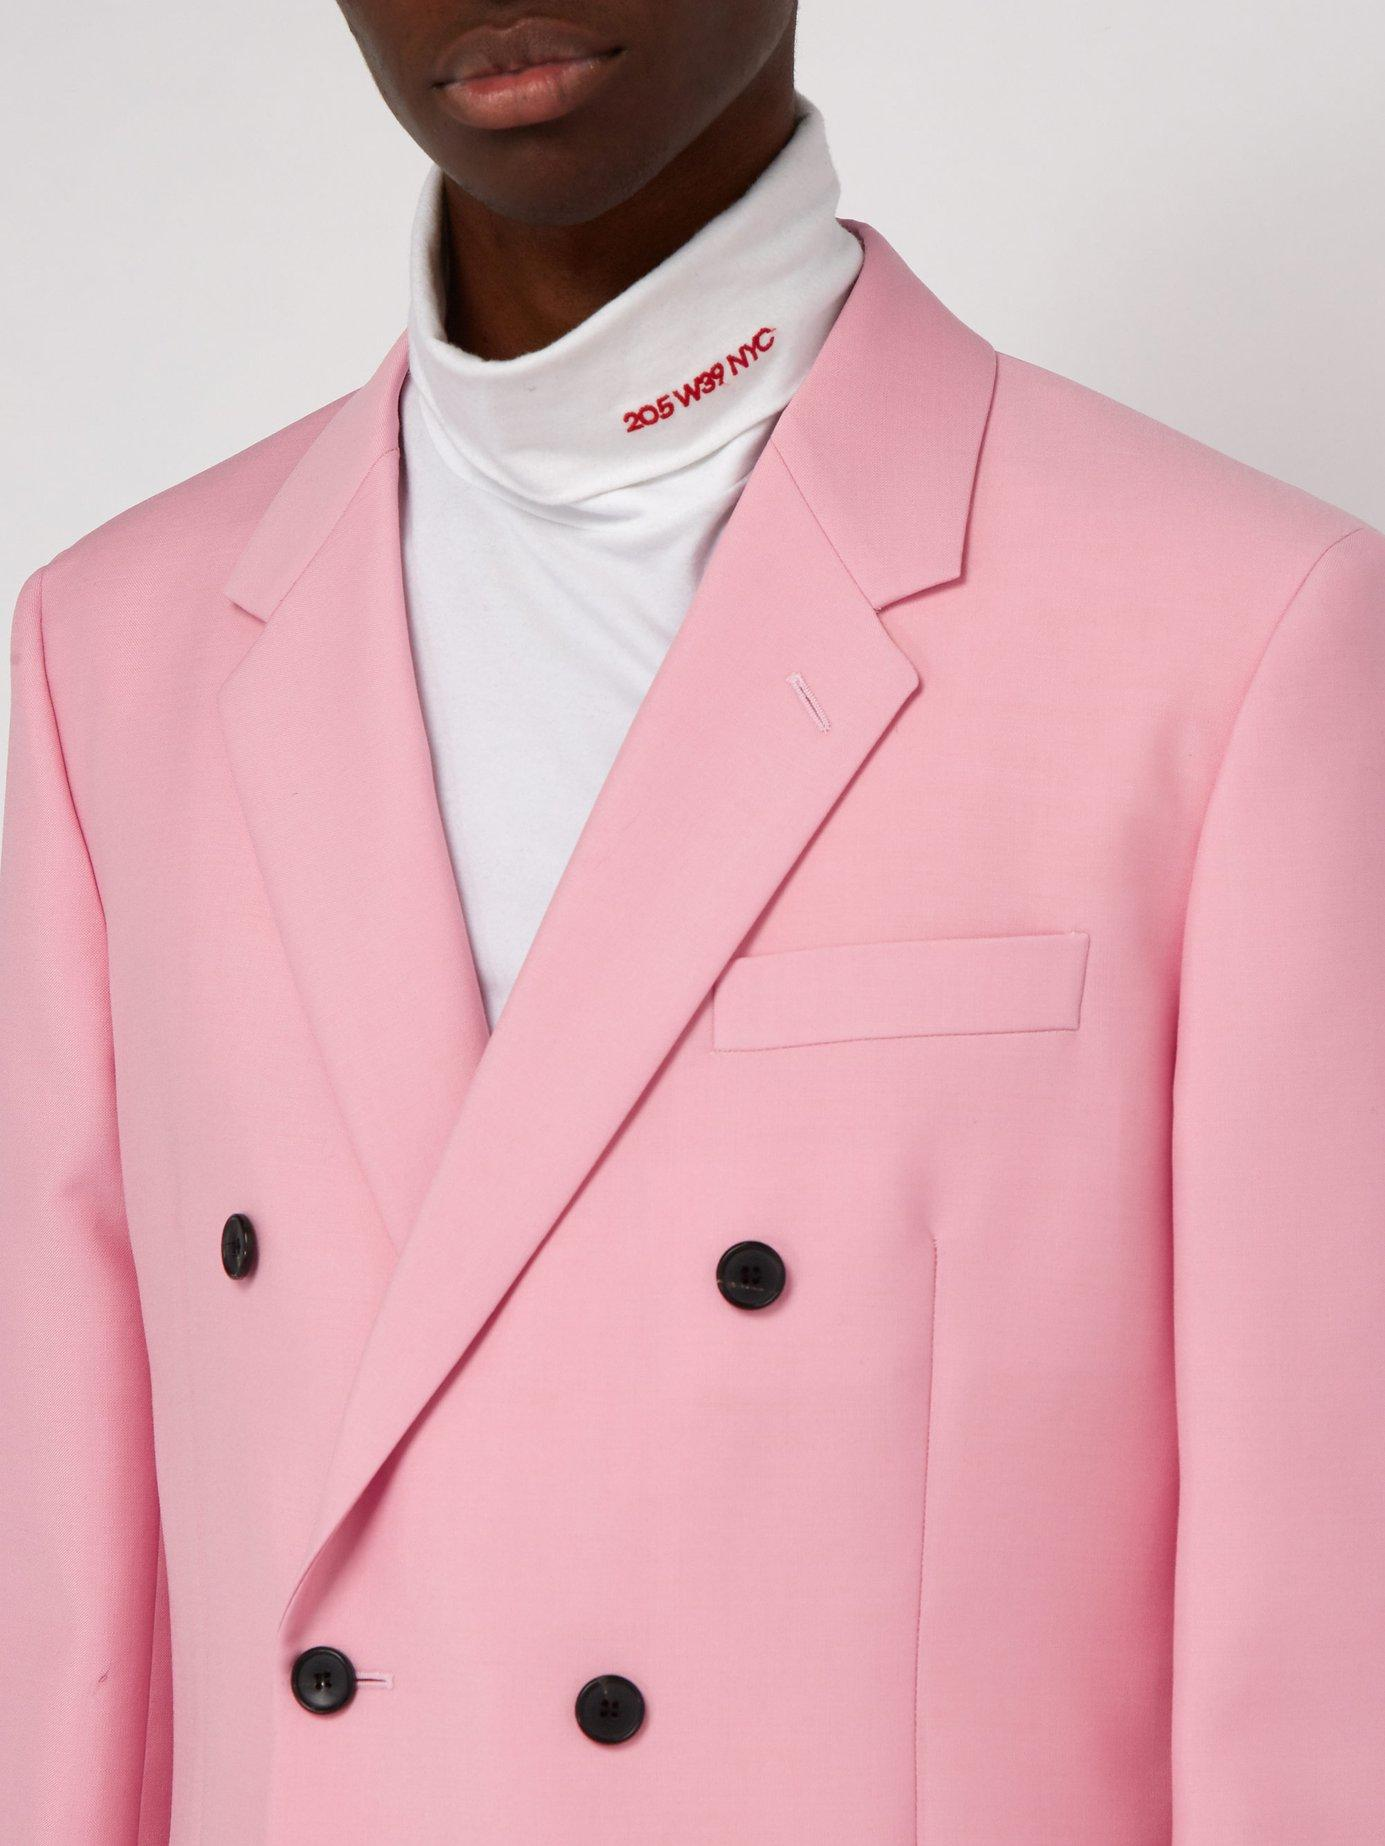 92233e0c2f13 CALVIN KLEIN 205W39NYC - Pink Double Breasted Mohair Blend Blazer for Men -  Lyst. View fullscreen